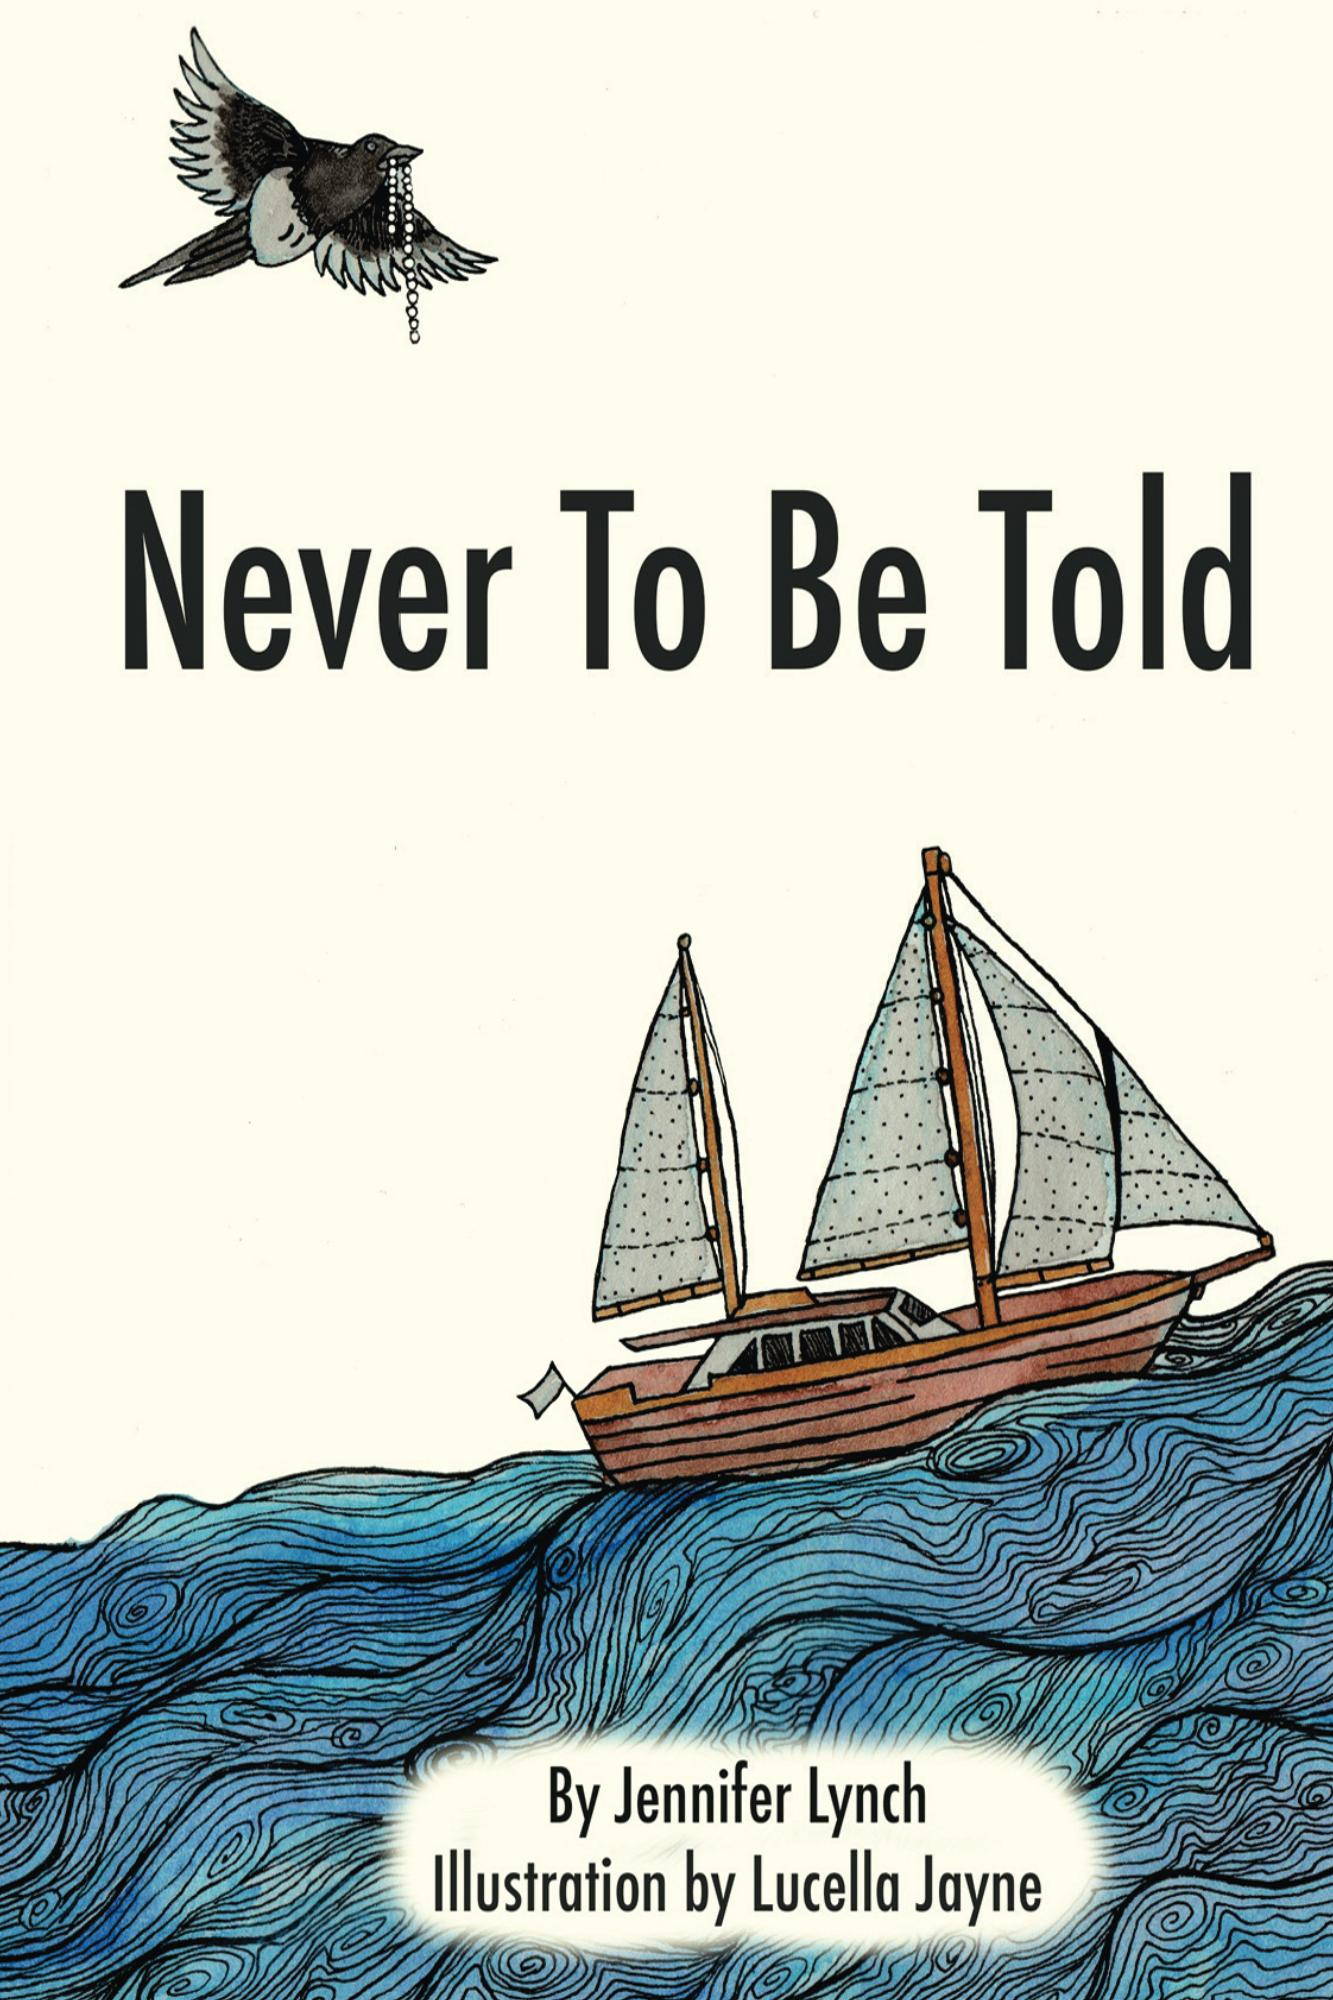 Goodreads Give Away – for Never To Be Told